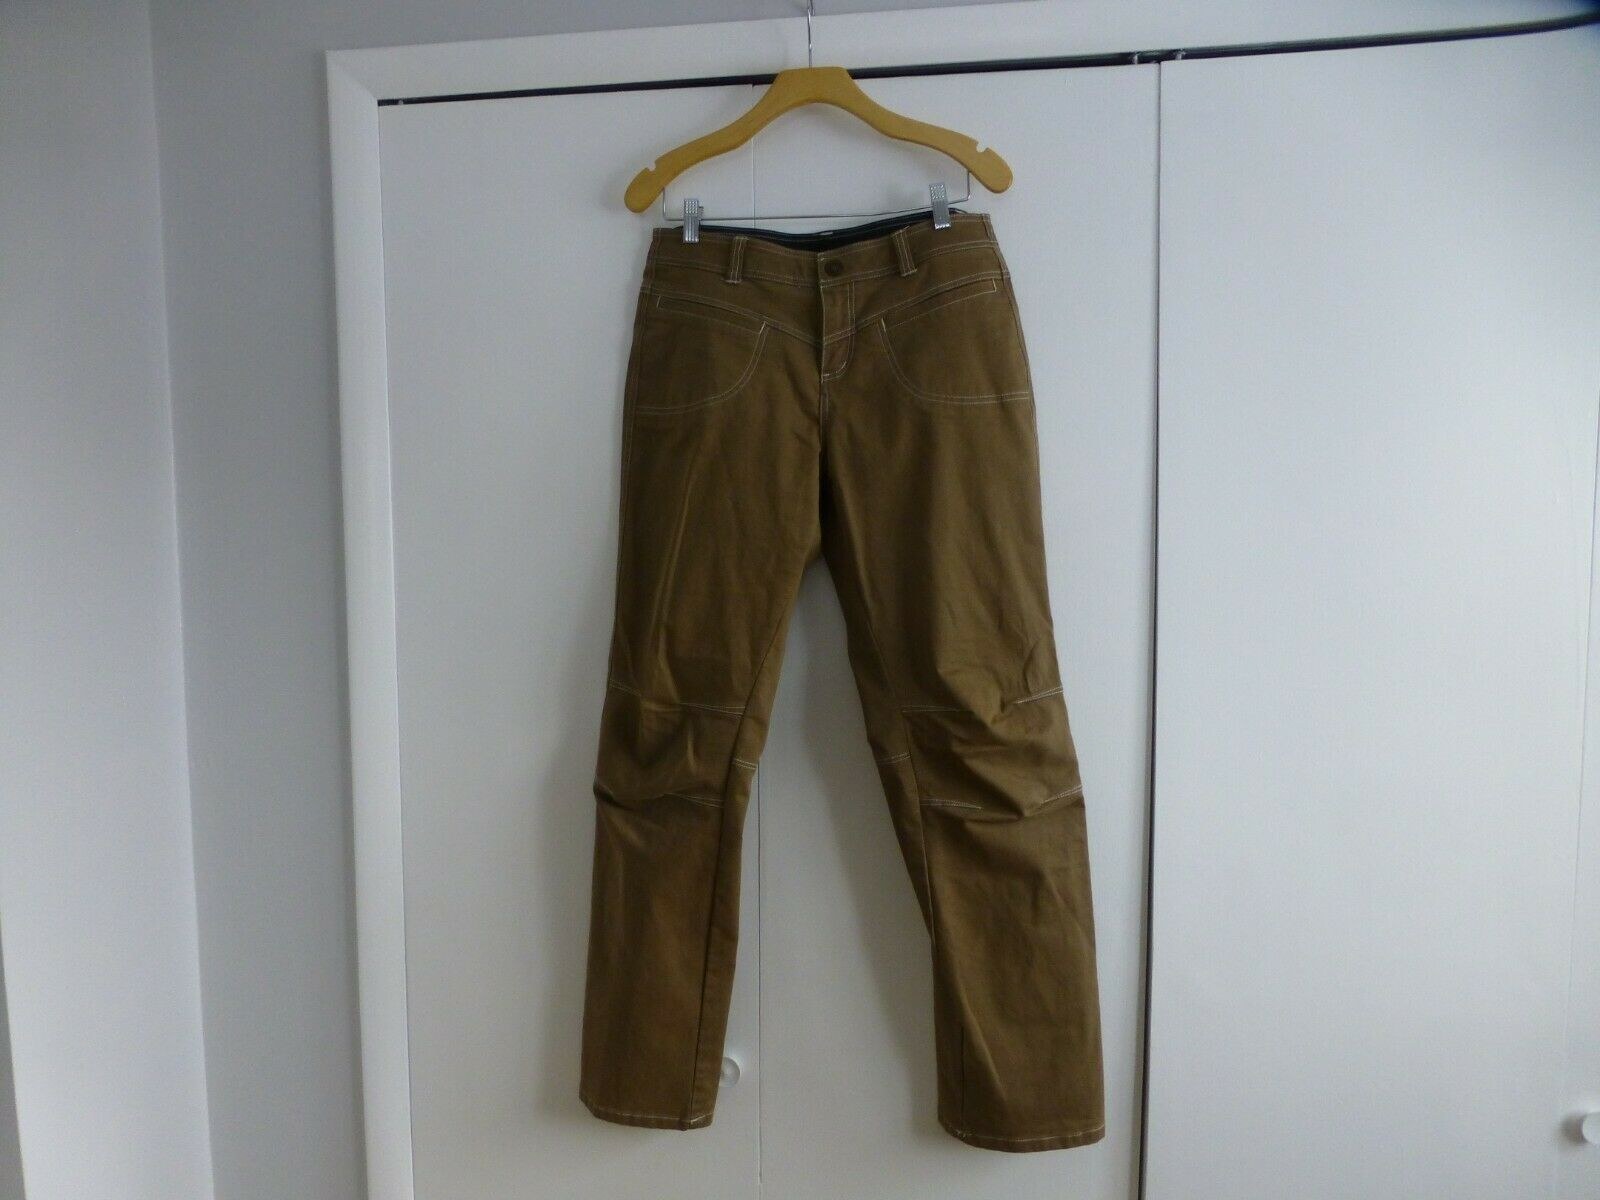 Kuhl Women's Brown Hiking Mountaineering Pants. Size 10 Regular. Excellent